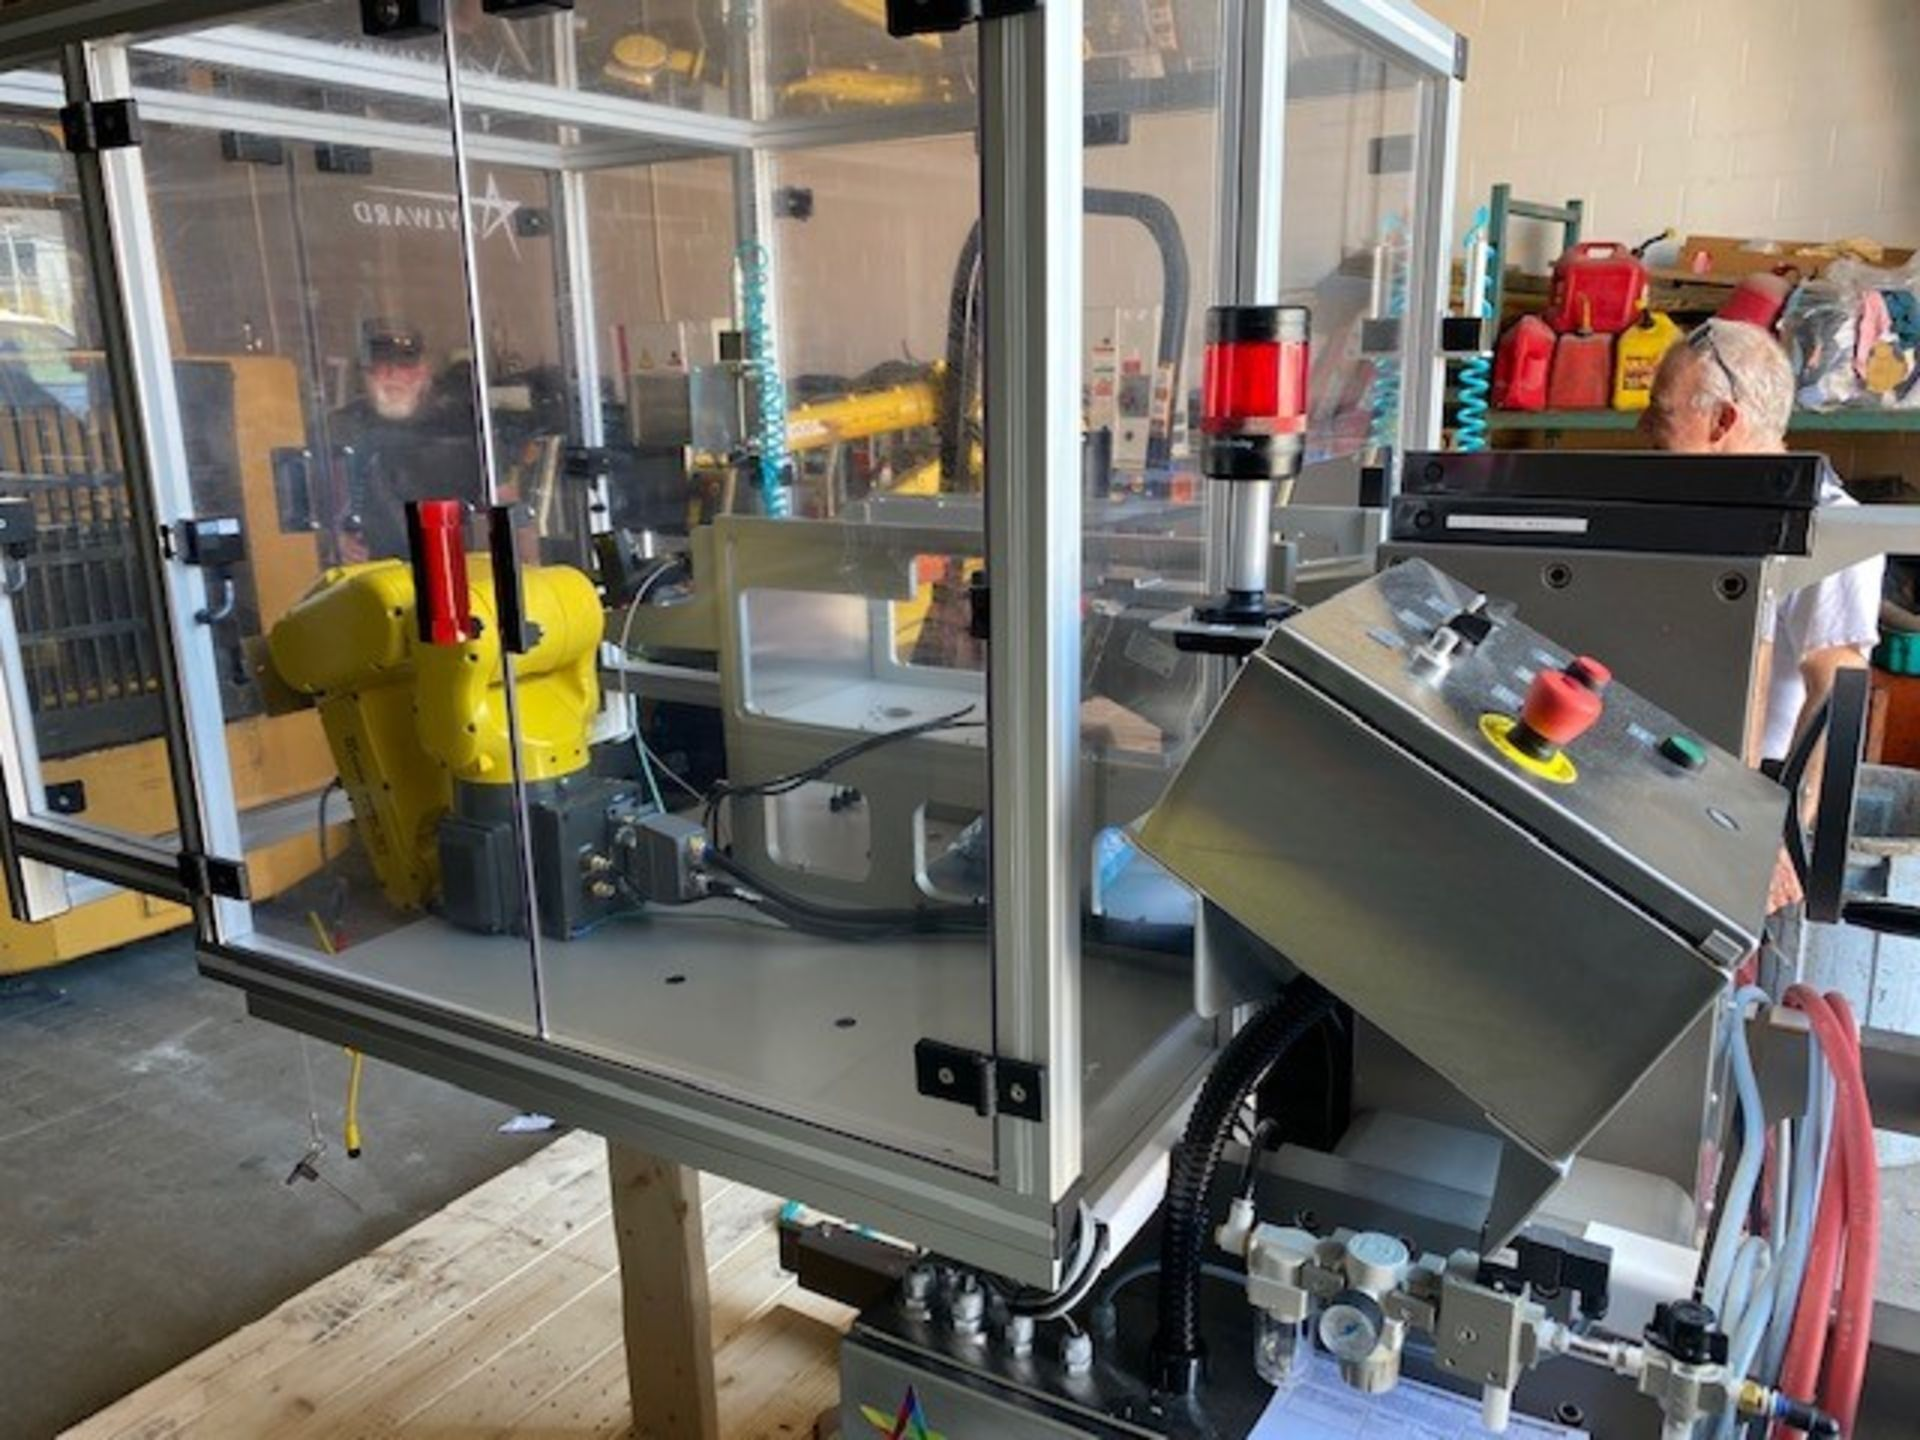 FANUC ROBOTIC VIBRATORY CELL LR MATE 200iD/4S WITH R30iB CONTROL AND ALLEN BRADLEY PLC HIM SN 176518 - Image 2 of 8